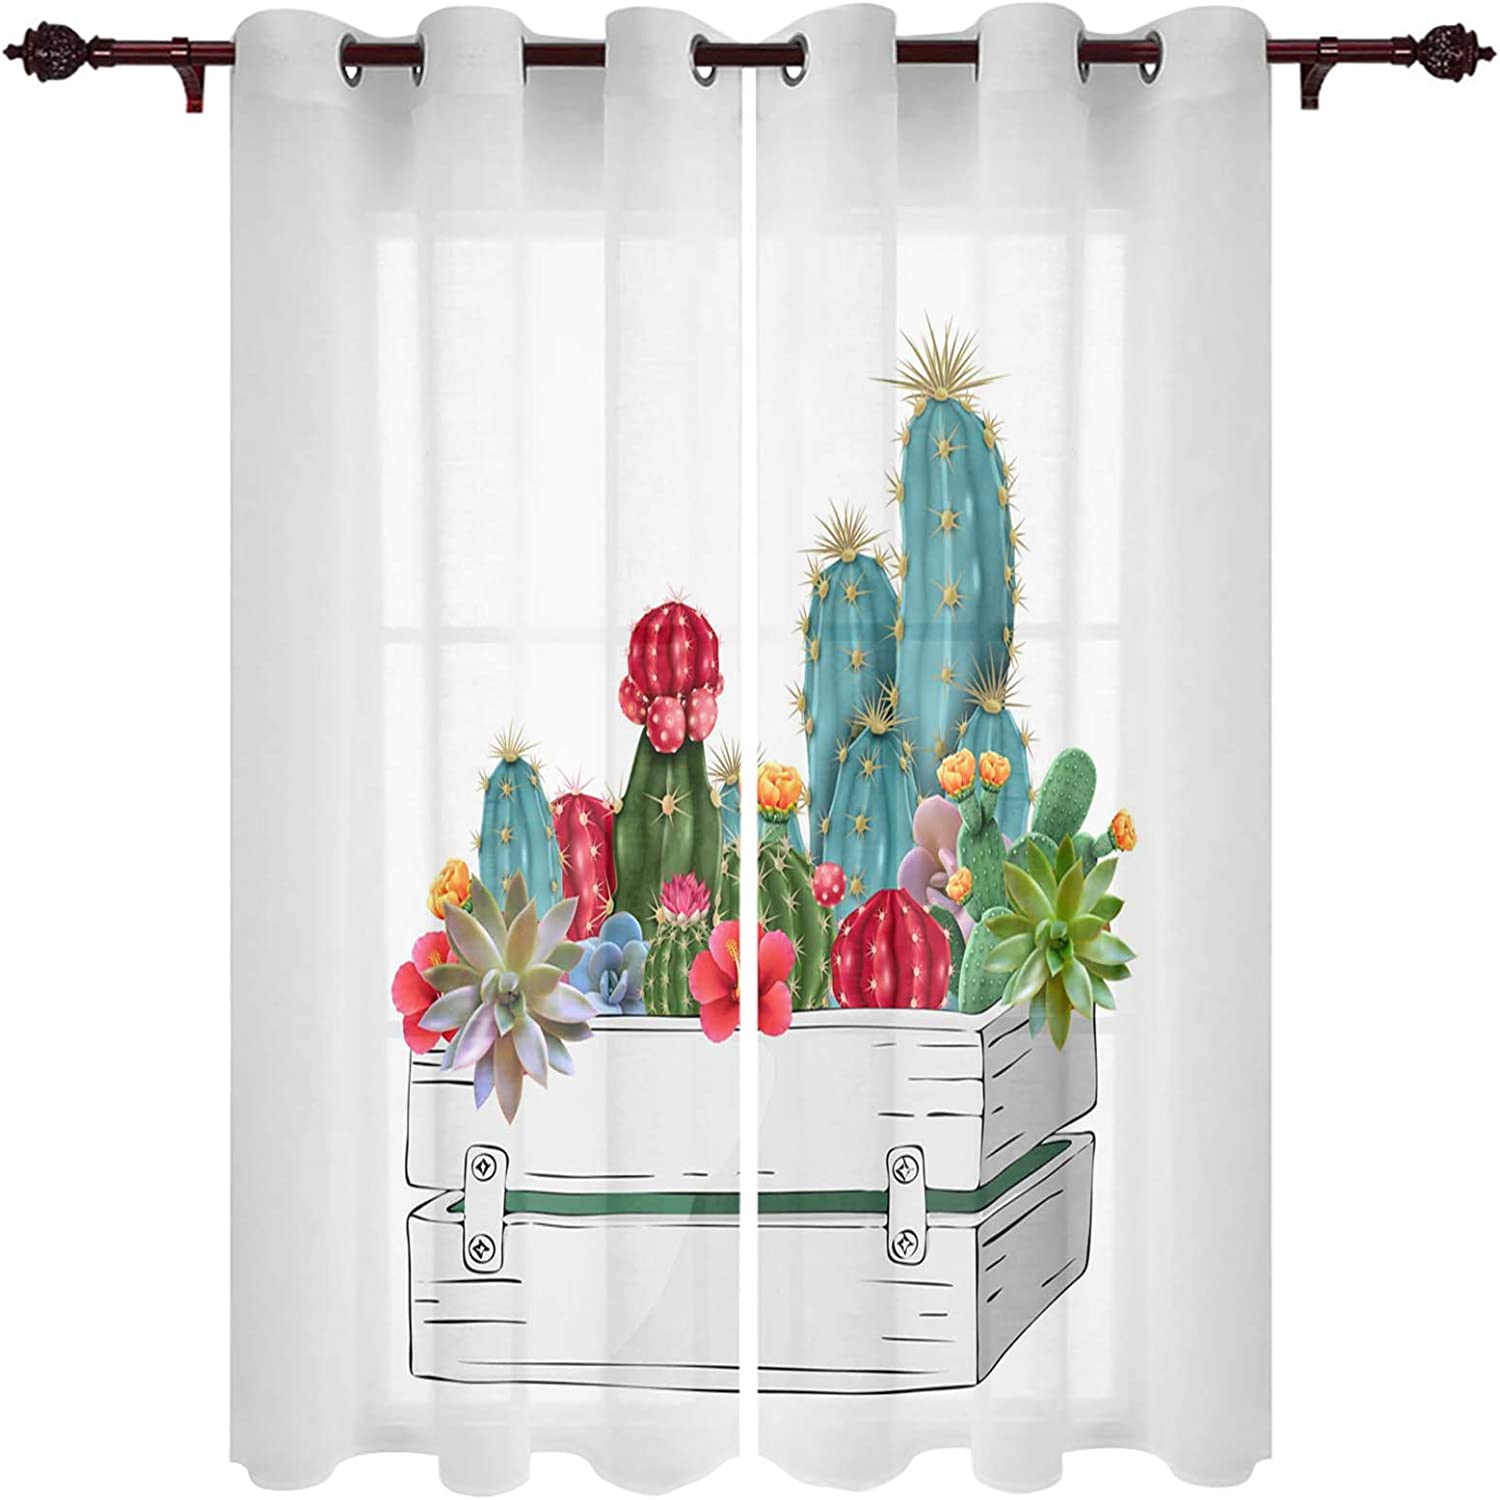 LooPoP Window Curtains Year-end annual account Branded goods with Grommets Cafe Bedroom for Kitchen Gr